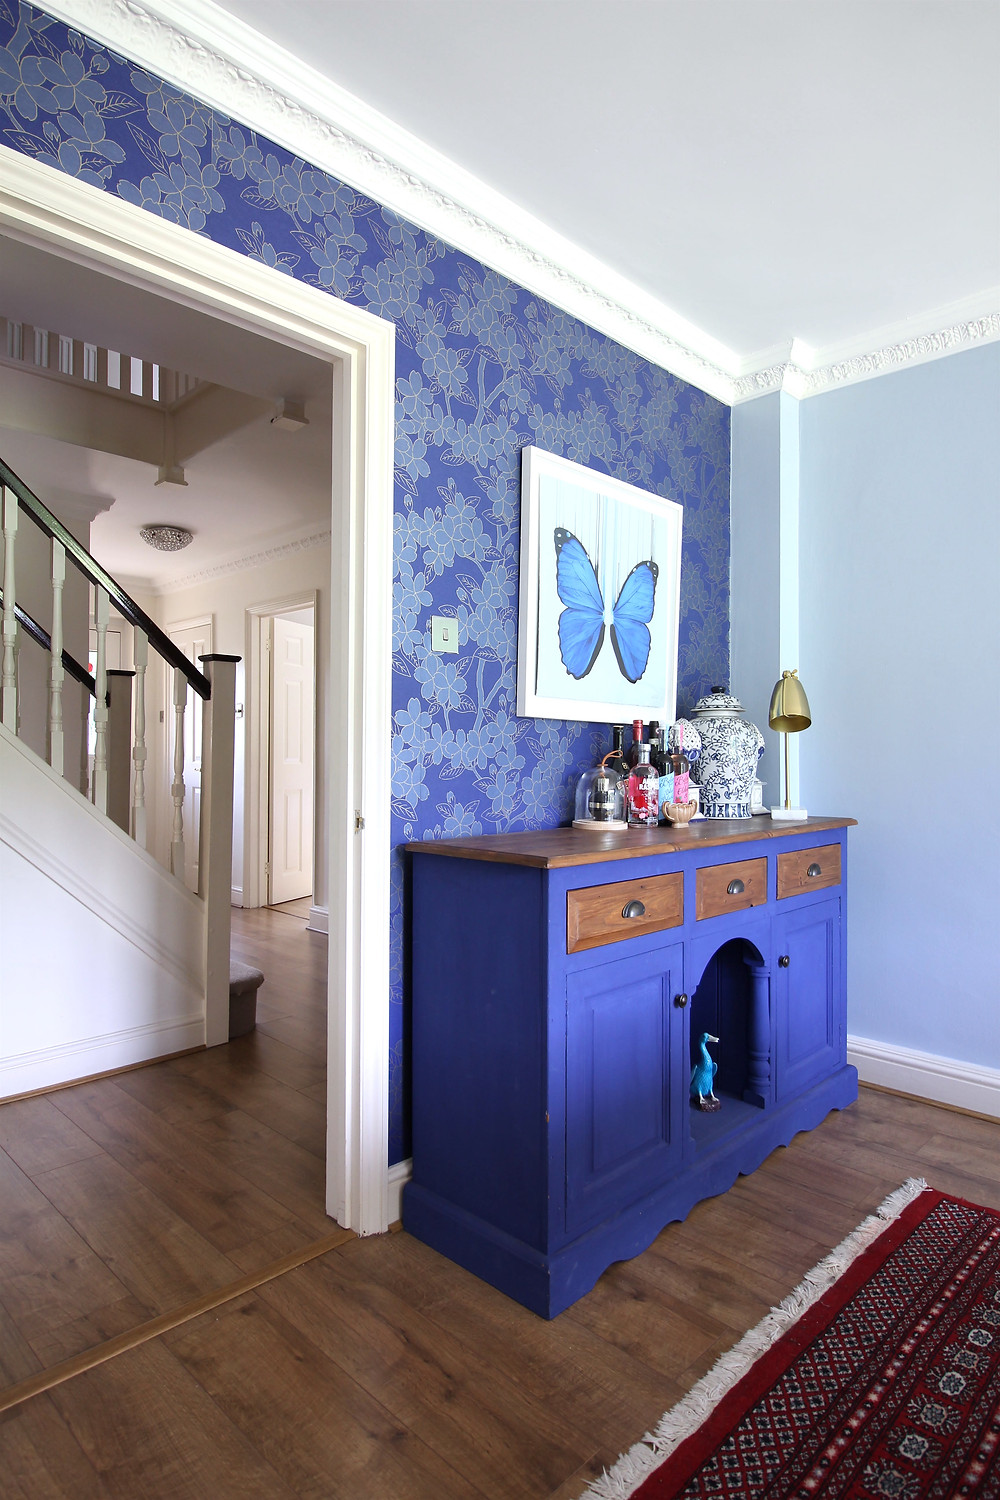 lOUISE mcNaught Morpho limited edition print Riseart, Napoleonic Blue sideboard